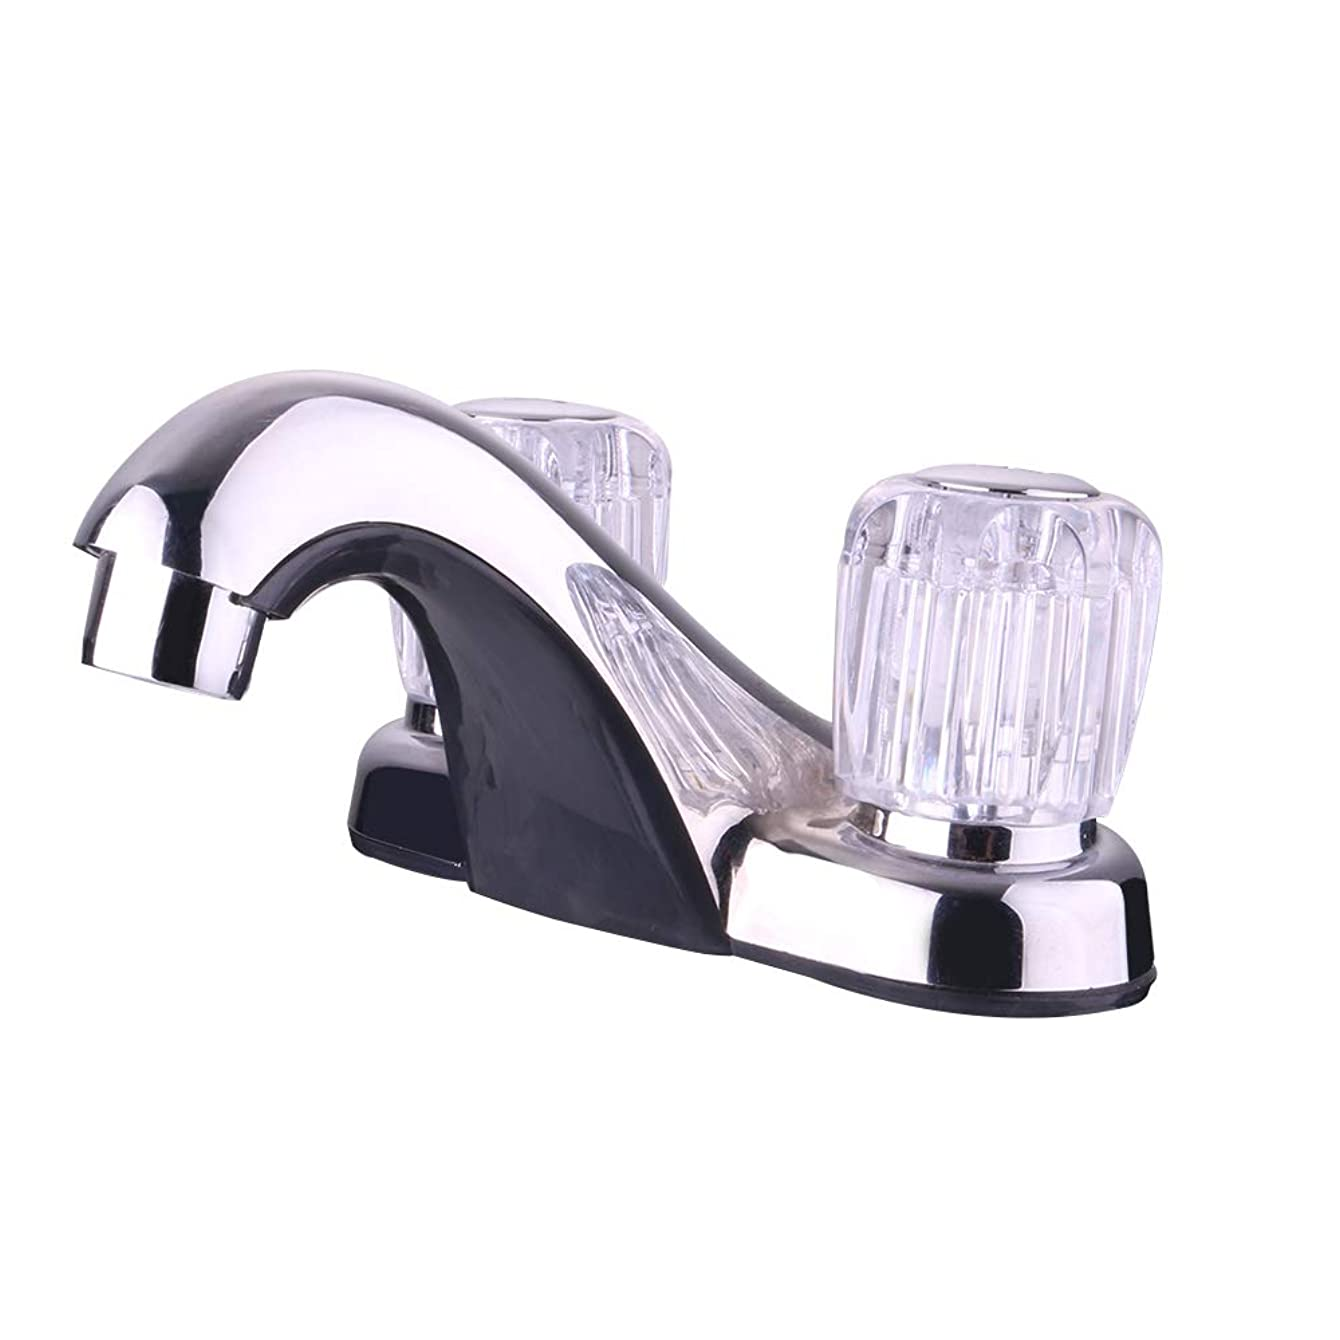 RV Bathroom Sink Faucet With Goose Spout Crystal Knob Operation for Recreational Vehicles, Travel Trailers, Motorhomes, and 5th Wheels